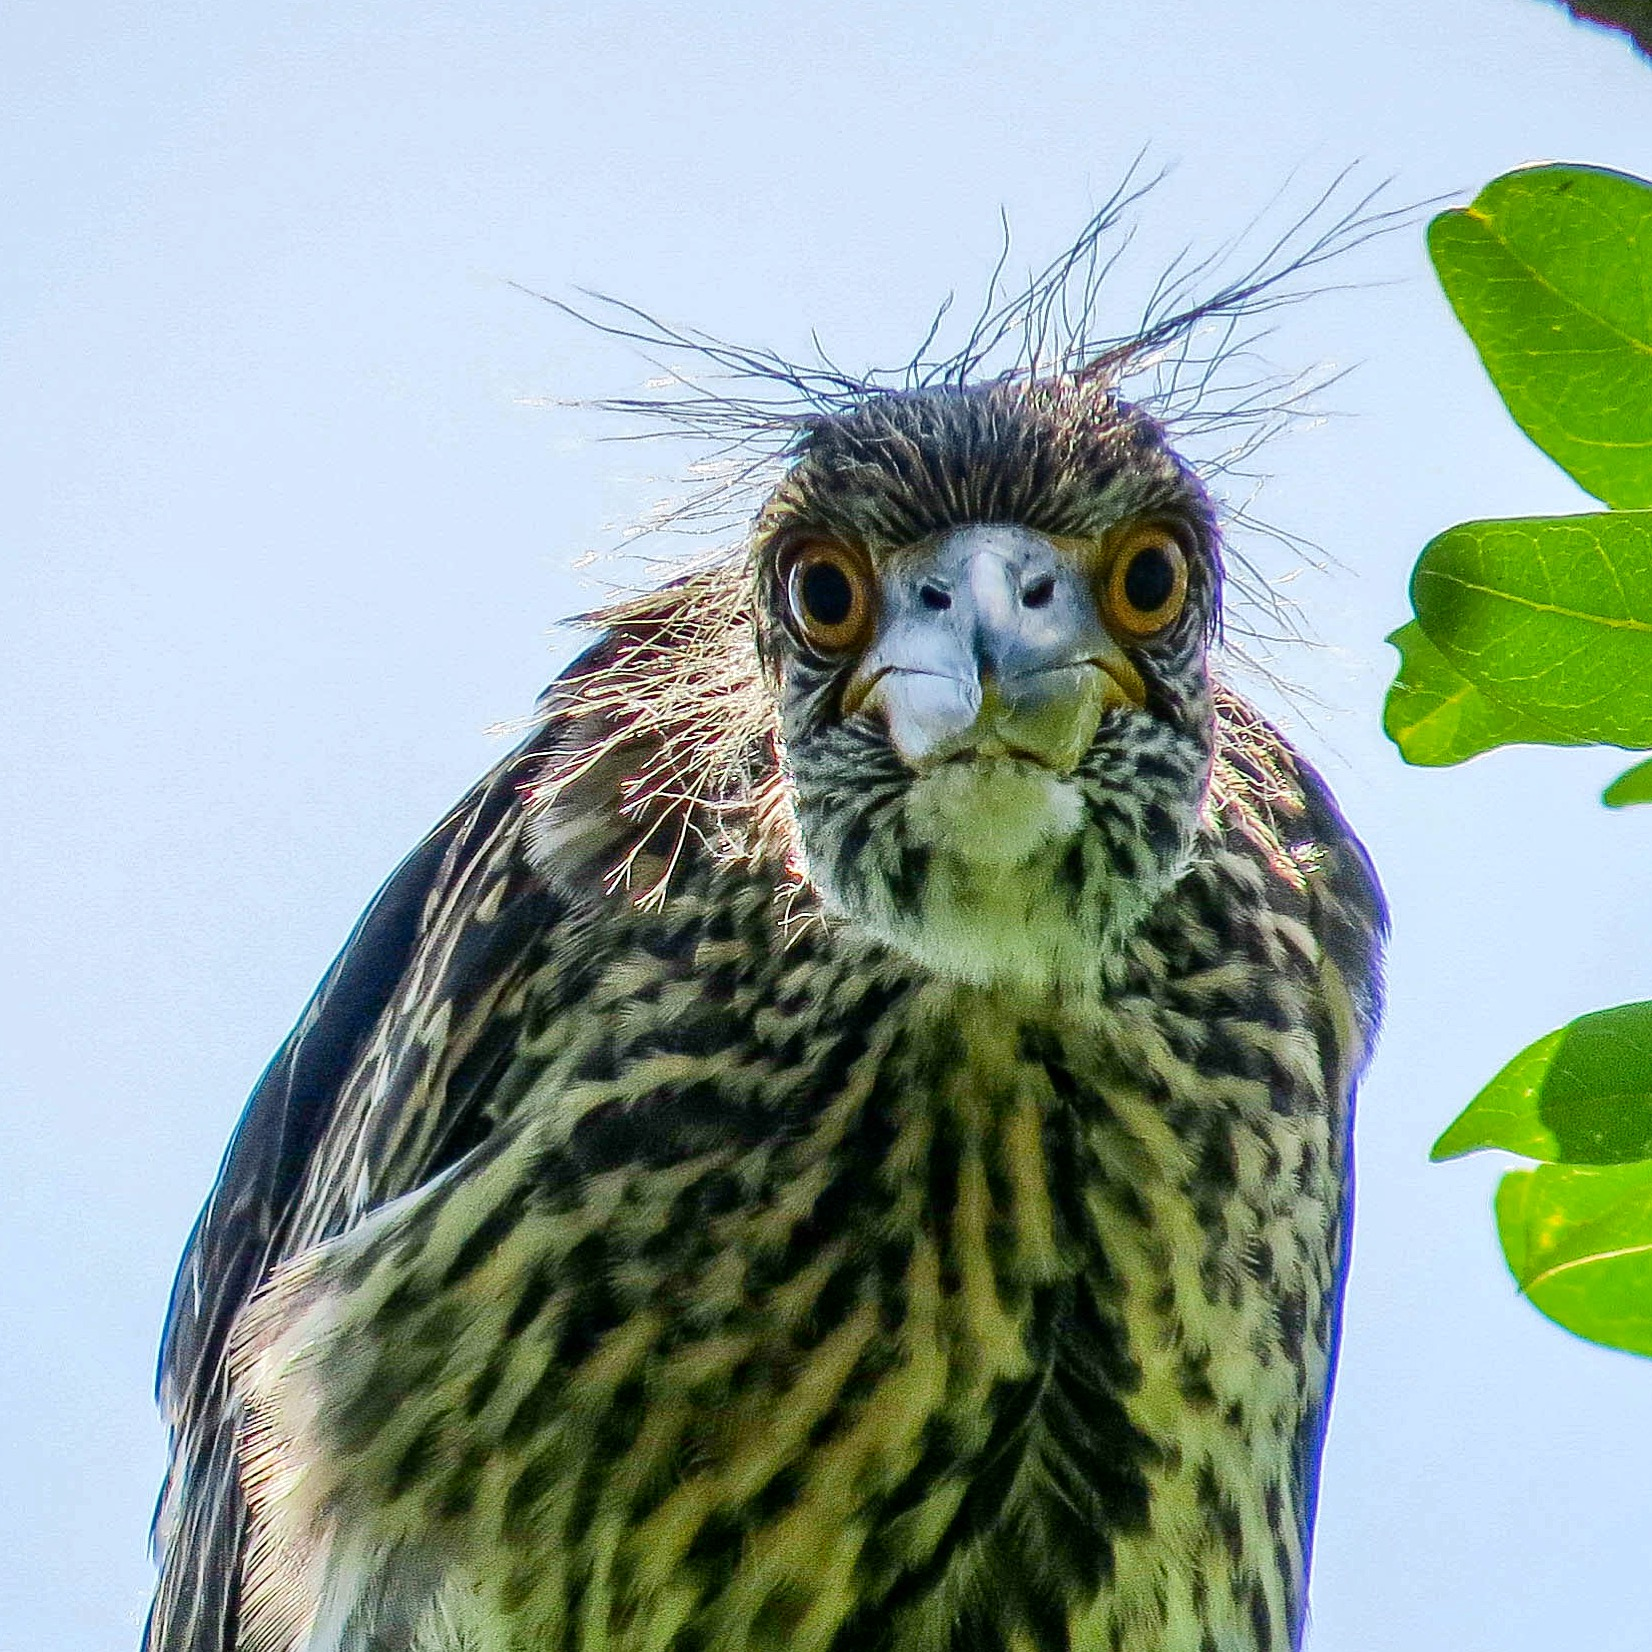 Juvenile yellow-crowned night heron pondering whether to fly or stay in the nest as long as possible. Photo on May 20, 2016, by Allison Zapata.